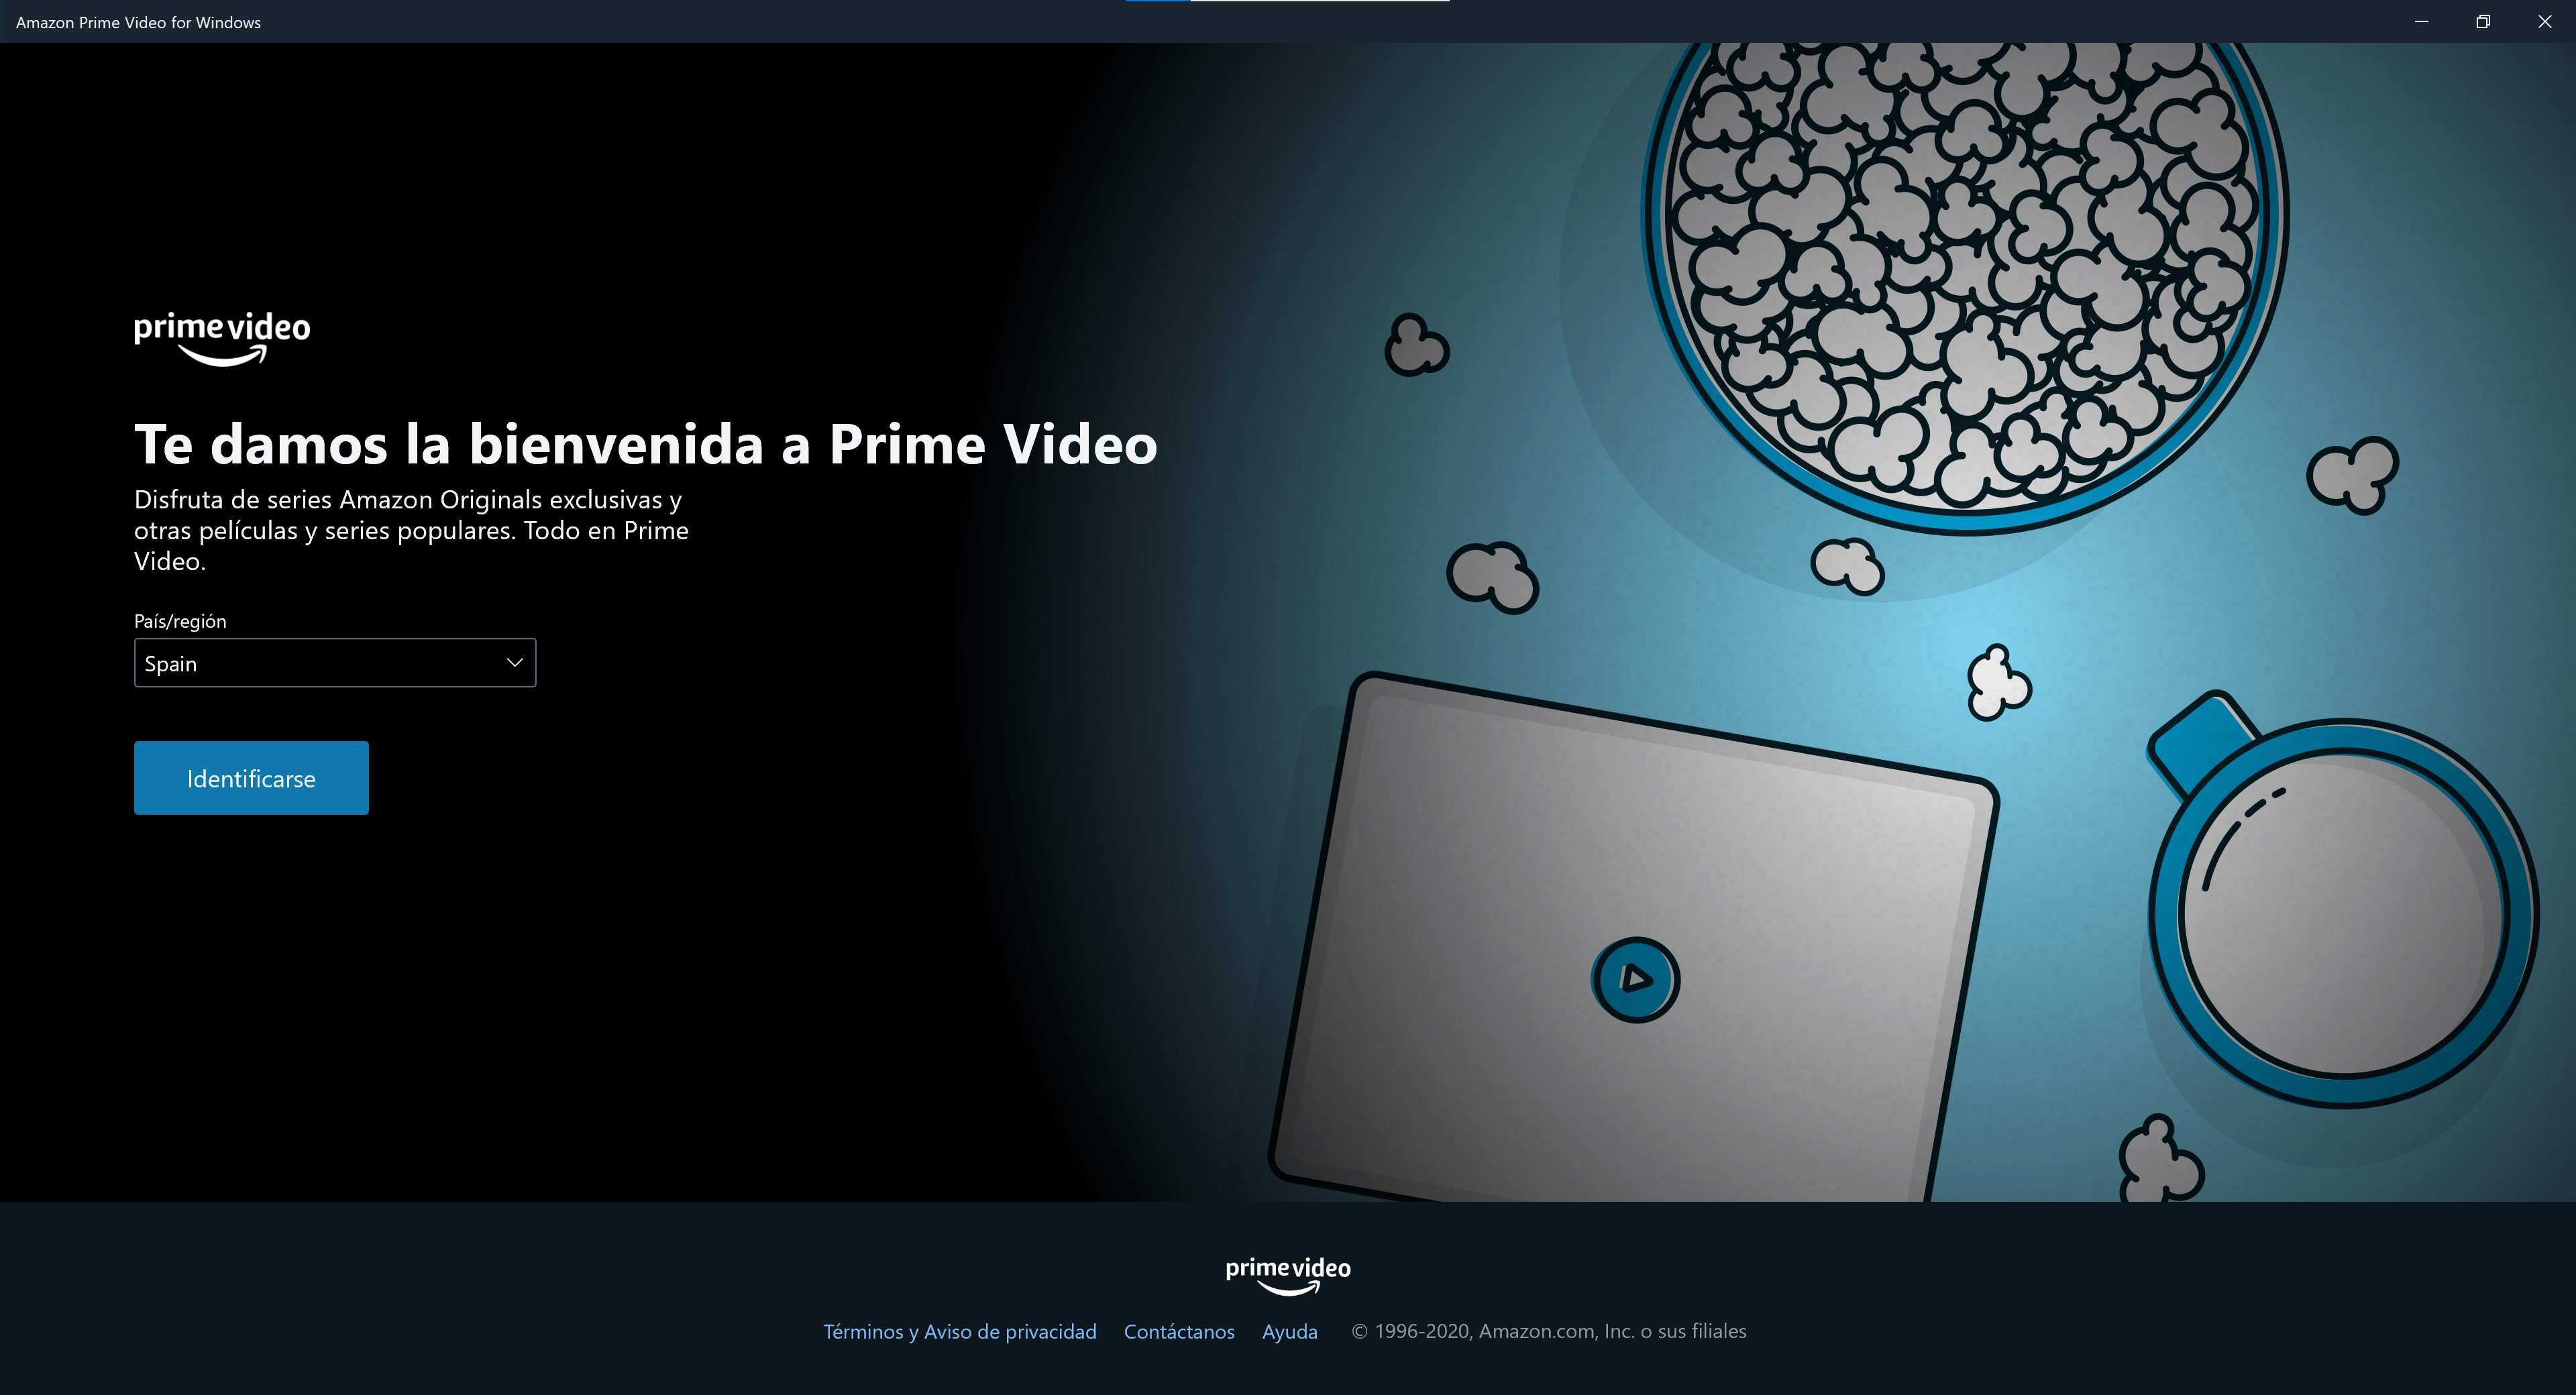 Amazon Prime Video para Windows